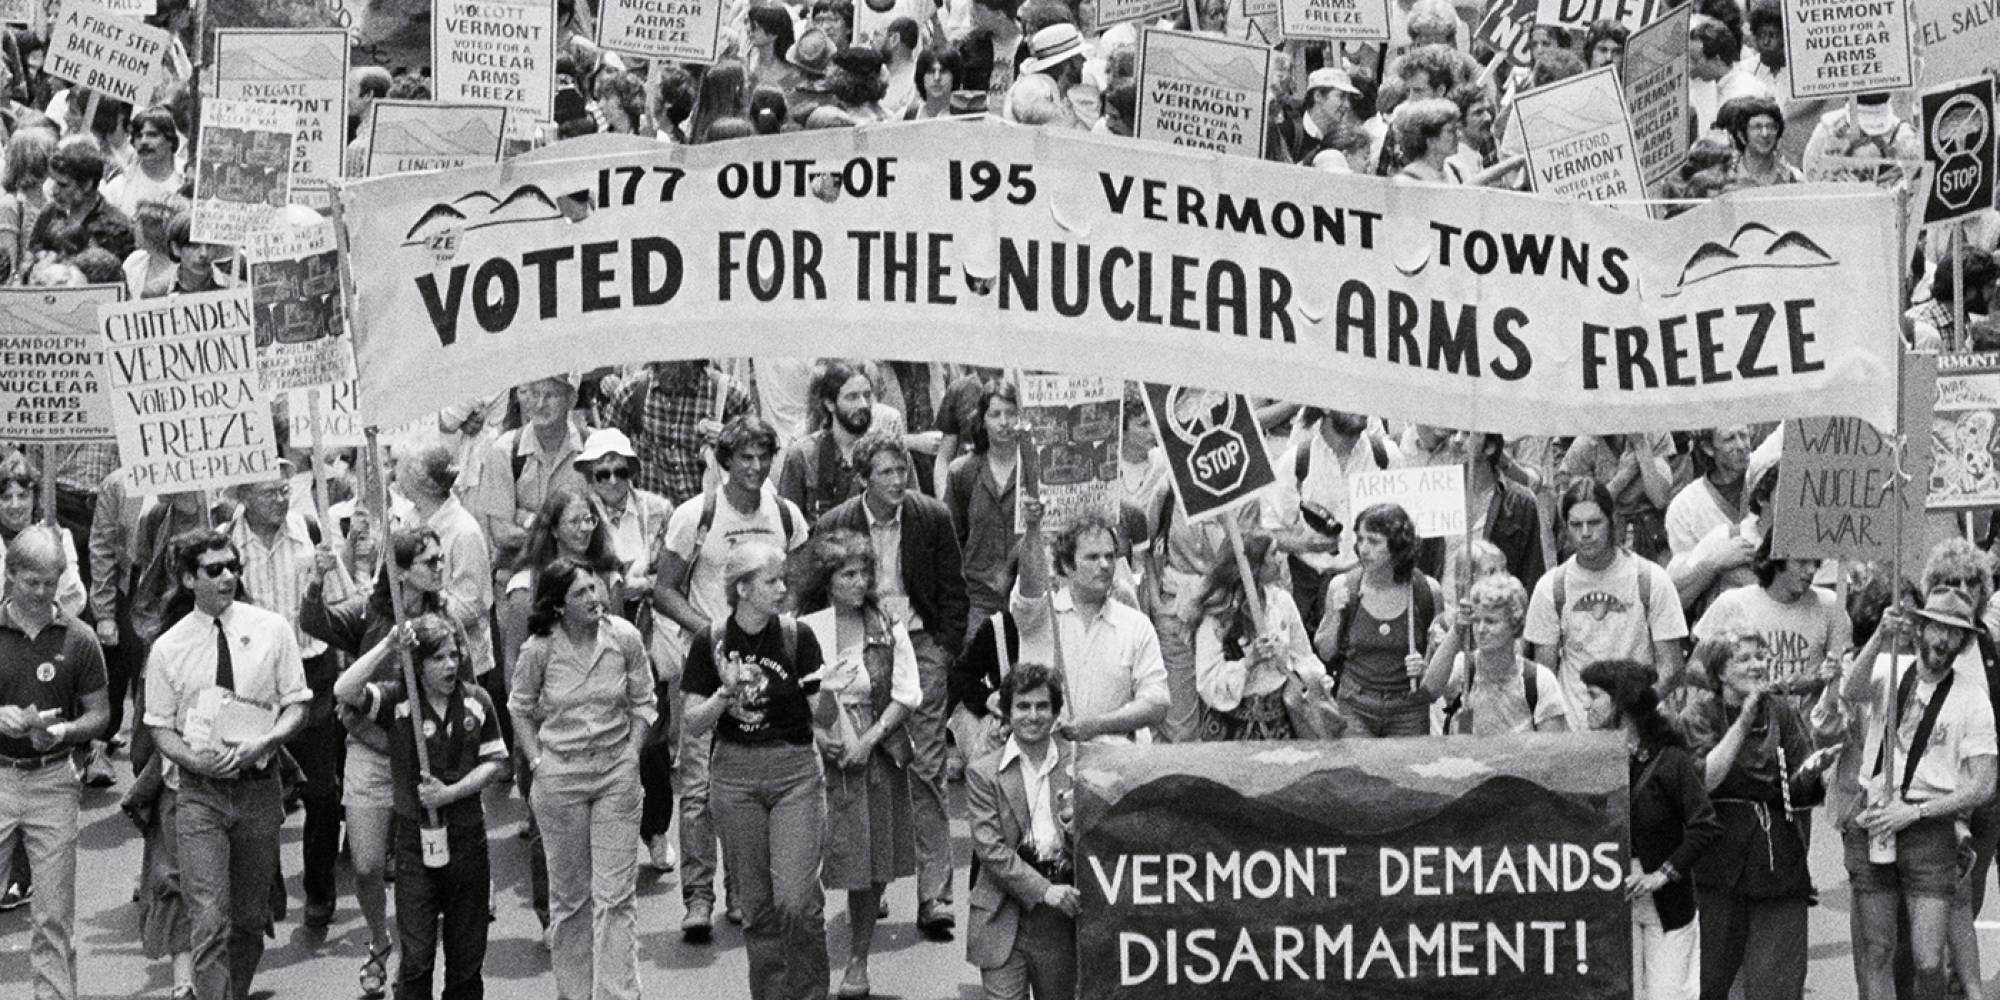 Demonstrators from Vermont rally to demand disarmament.